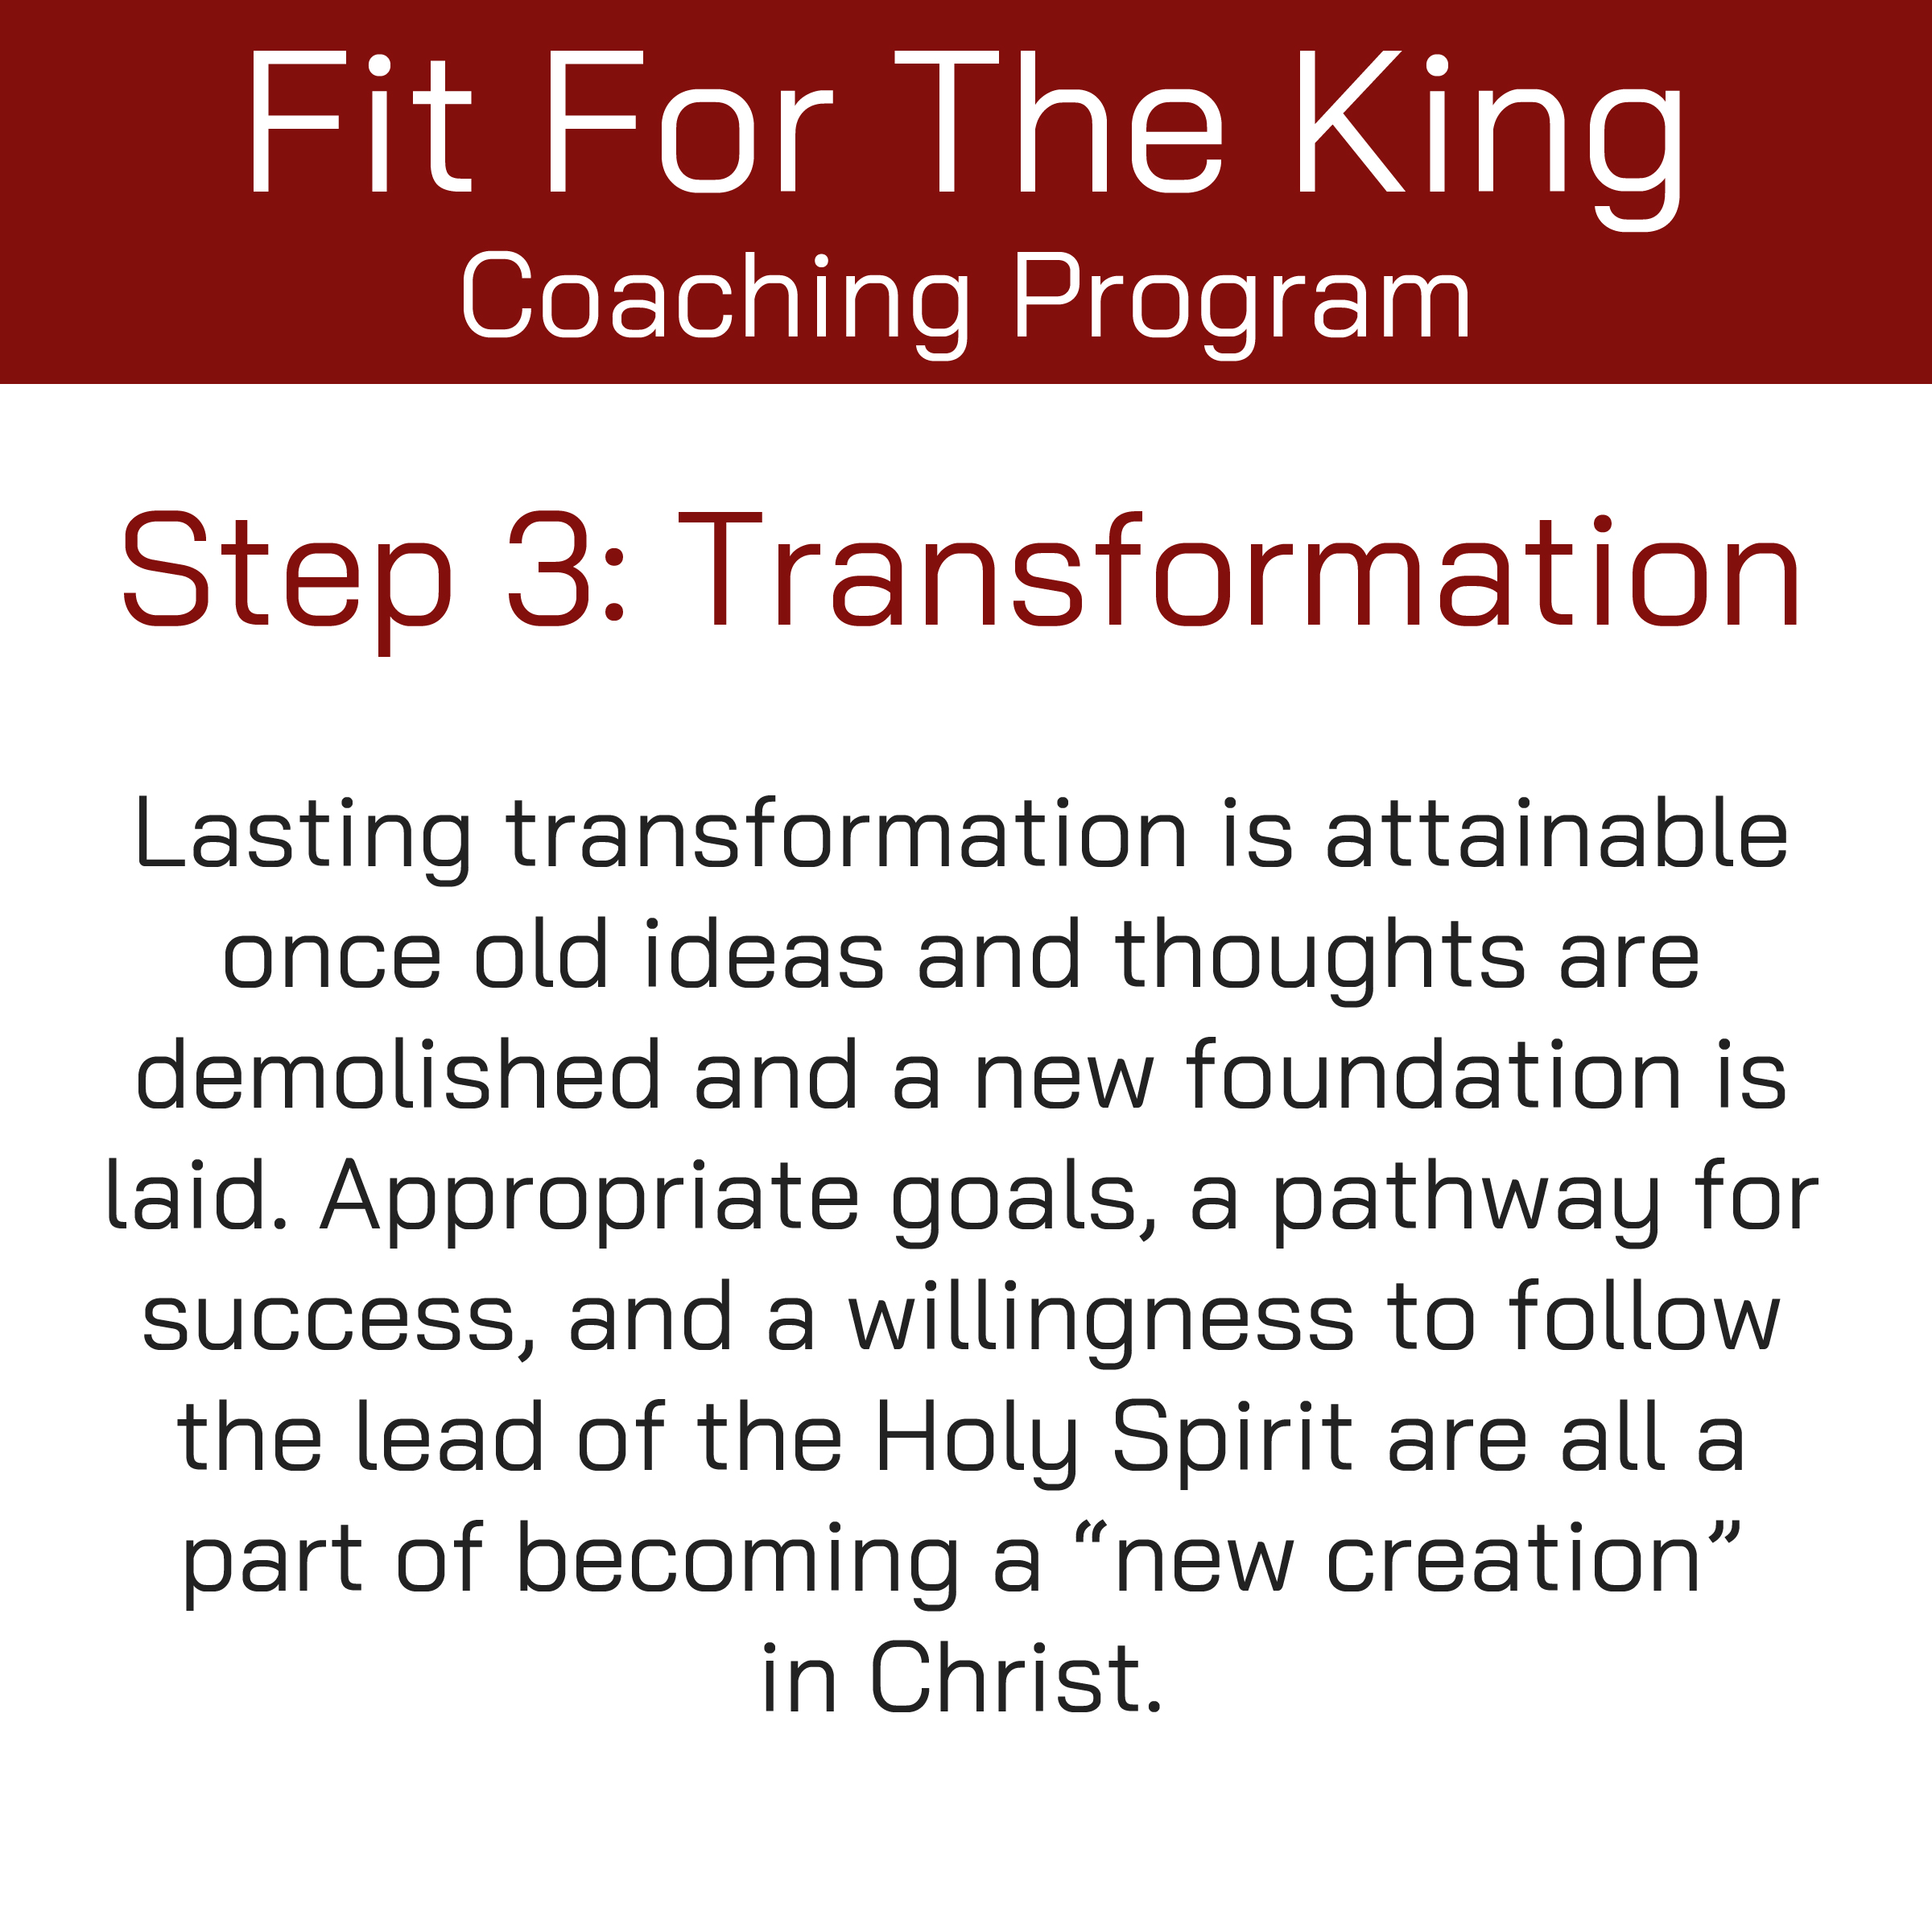 FFTK Coaching Program - Transformation